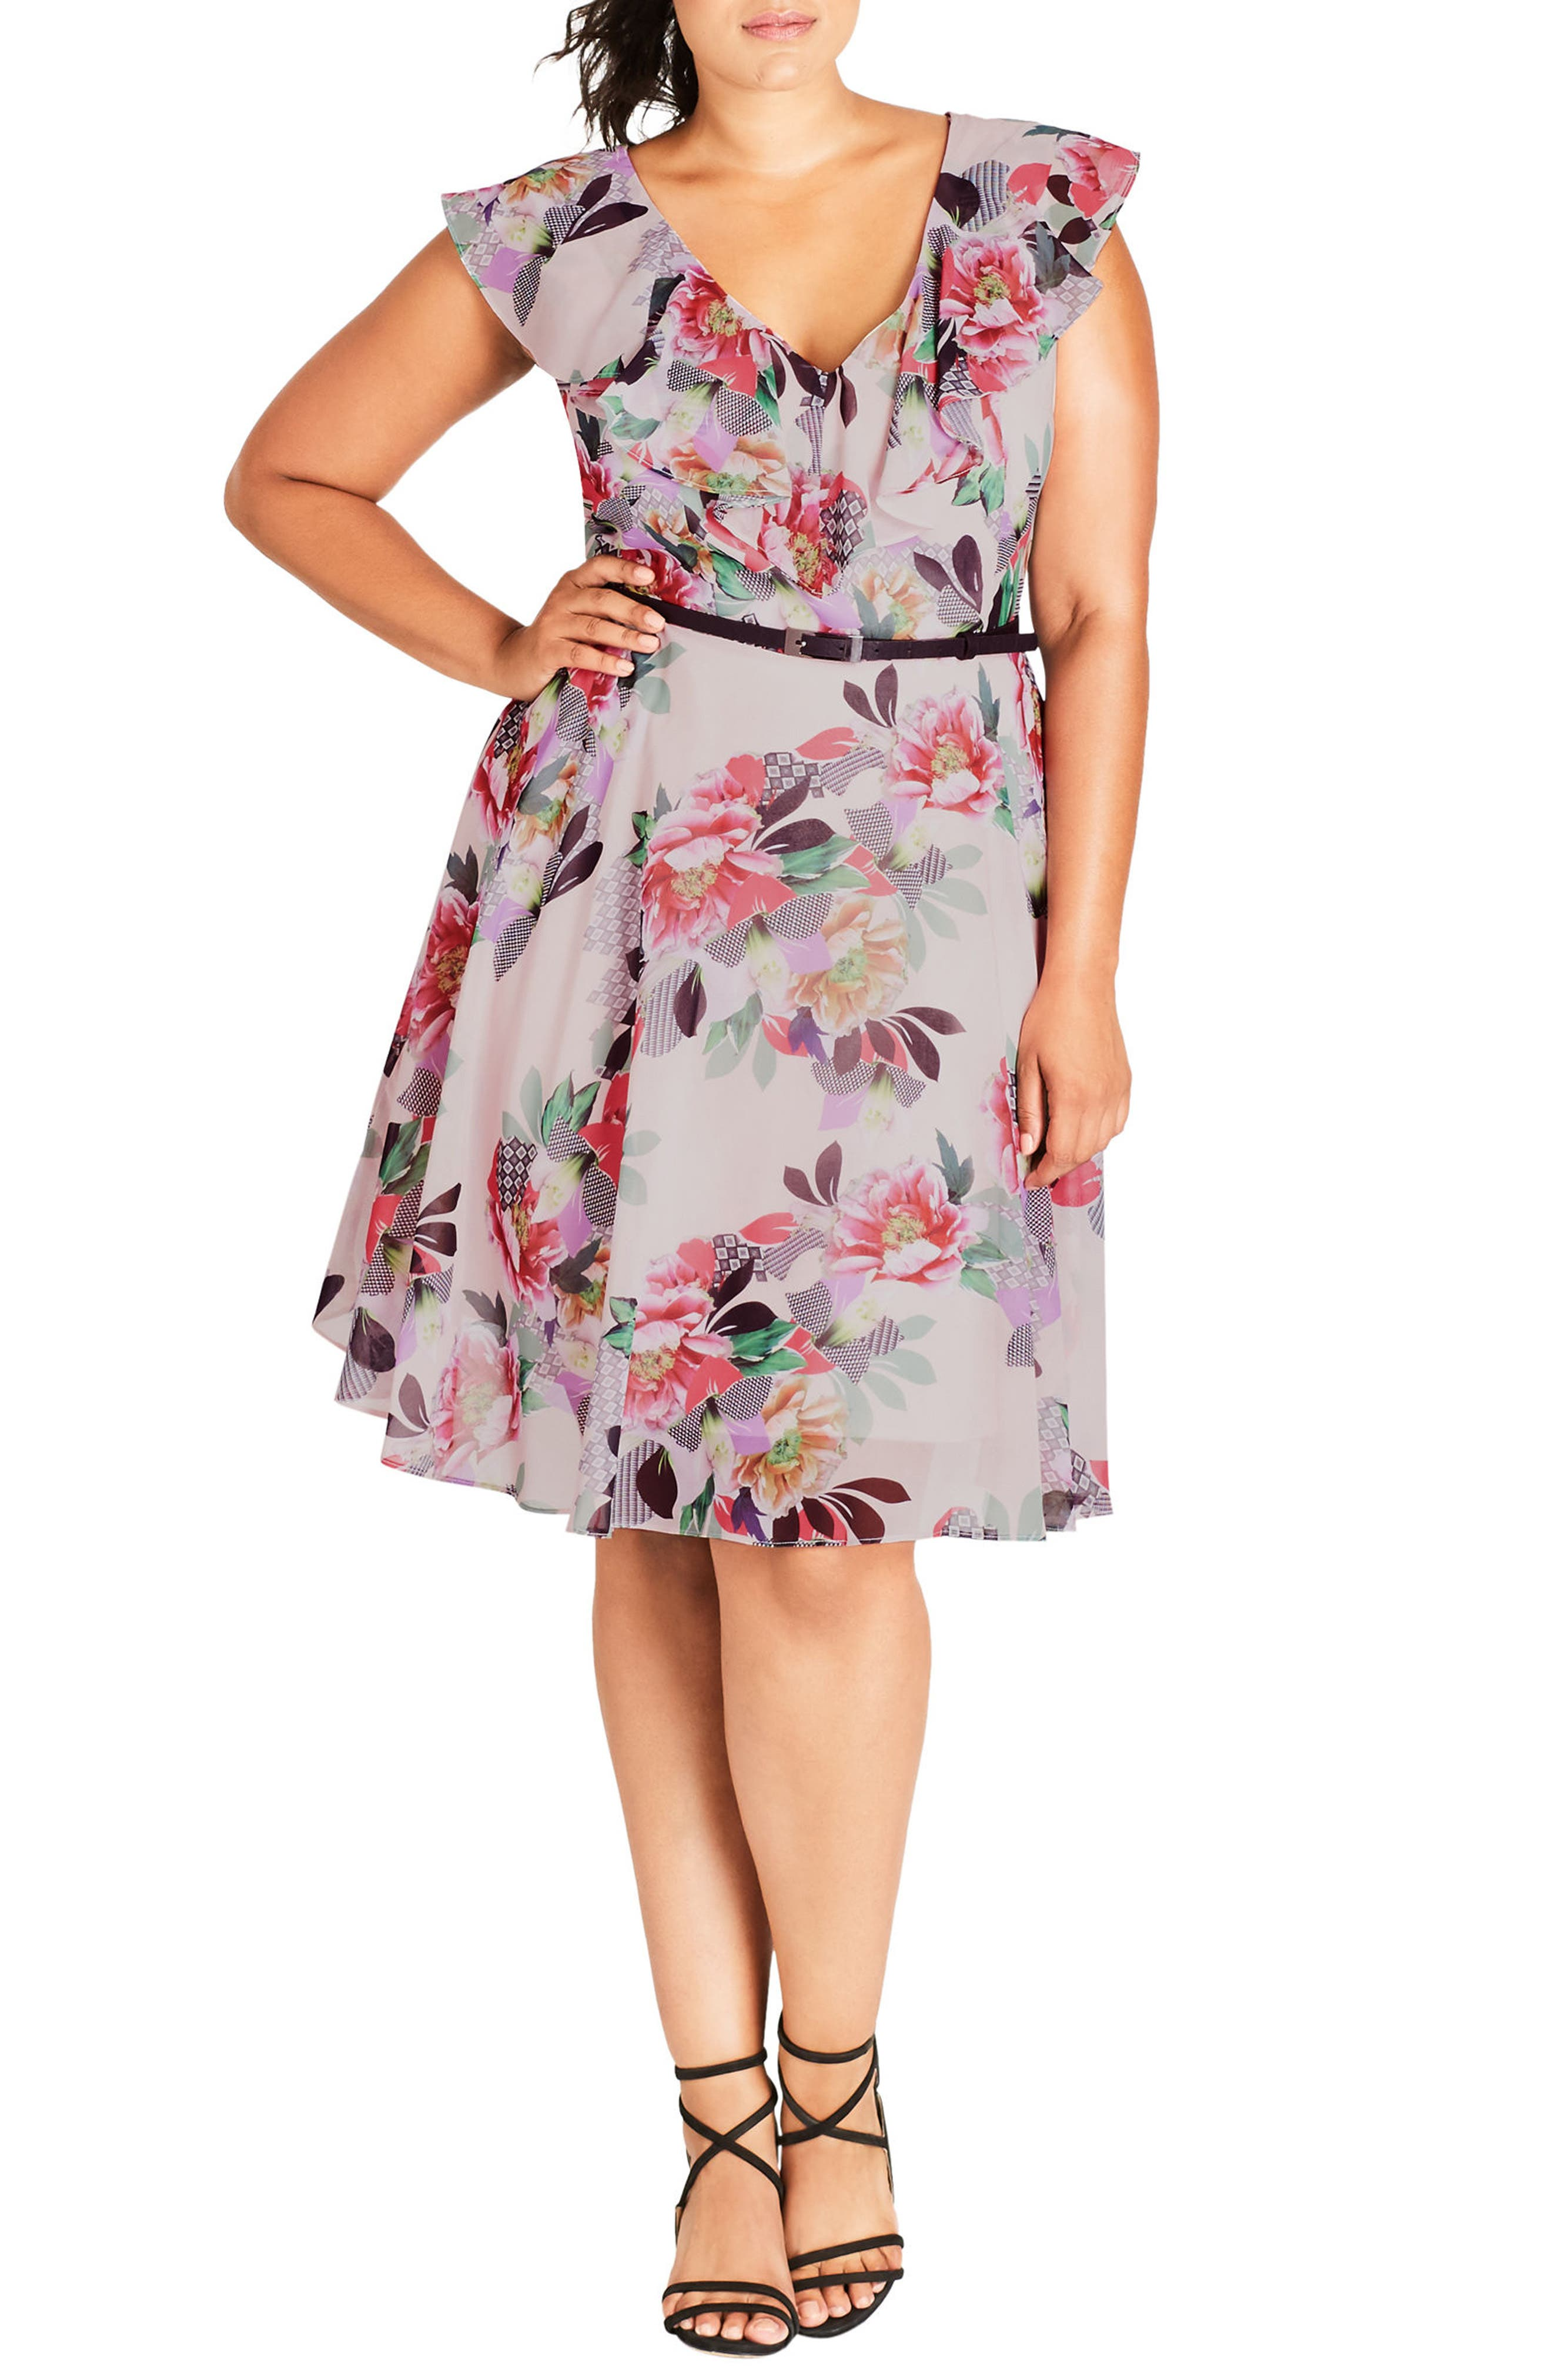 Romance Ruffle Floral Fit & Flare Dress,                         Main,                         color, 650